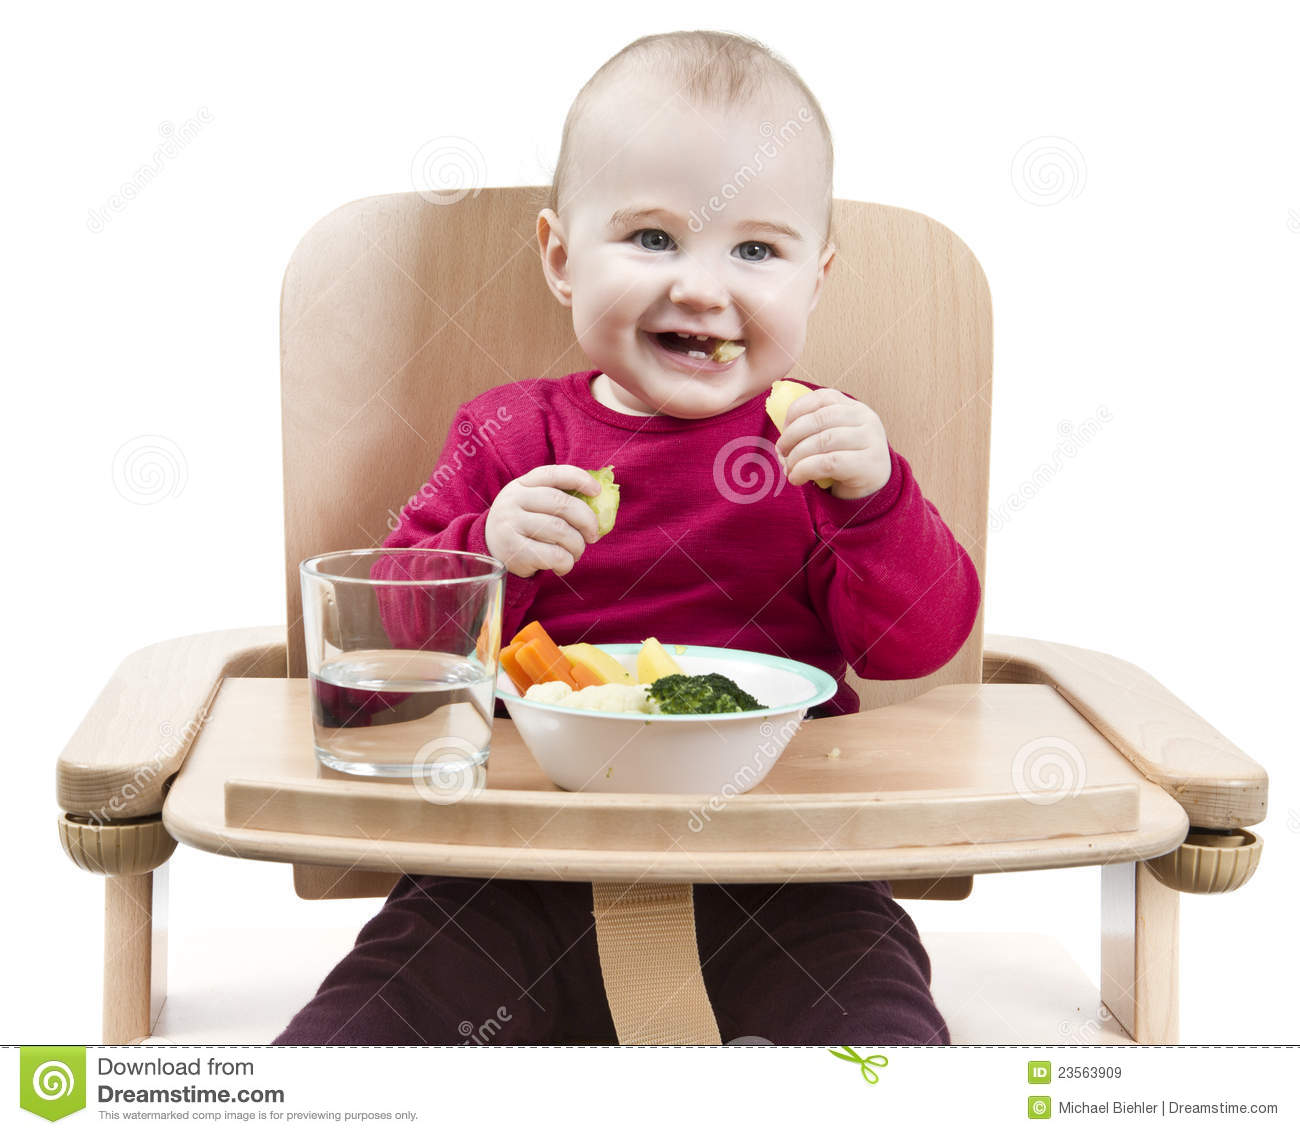 Baby Food Chair Young Child Eating In High Chair Royalty Free Stock Images